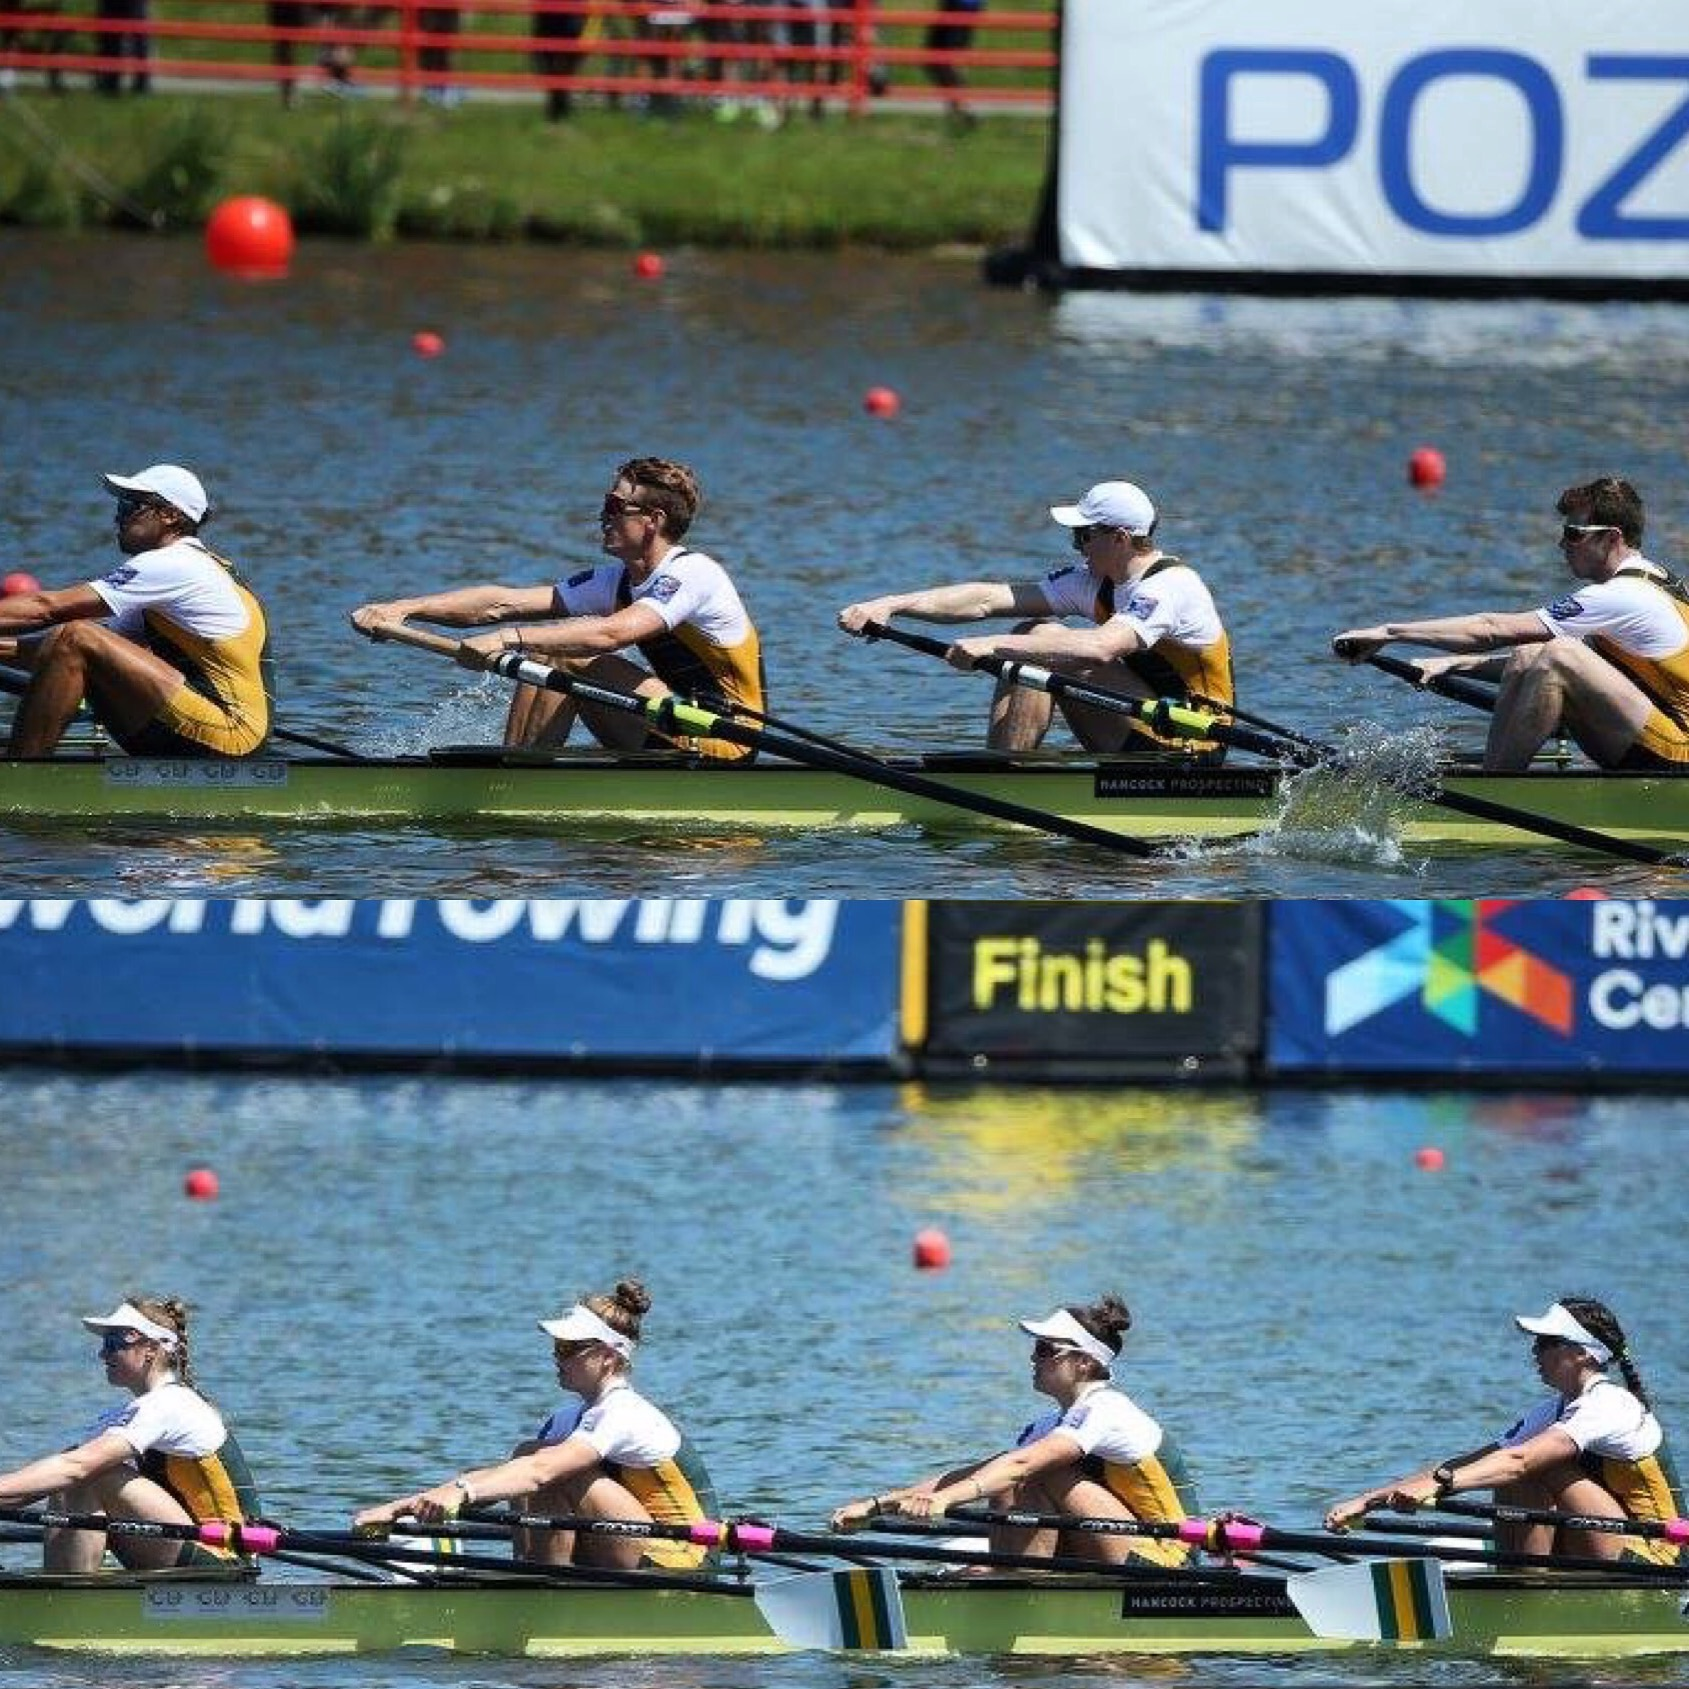 World Cup II - AUS Men's four taking gold, and Women's quad taking Silver at World Cup II.JPG